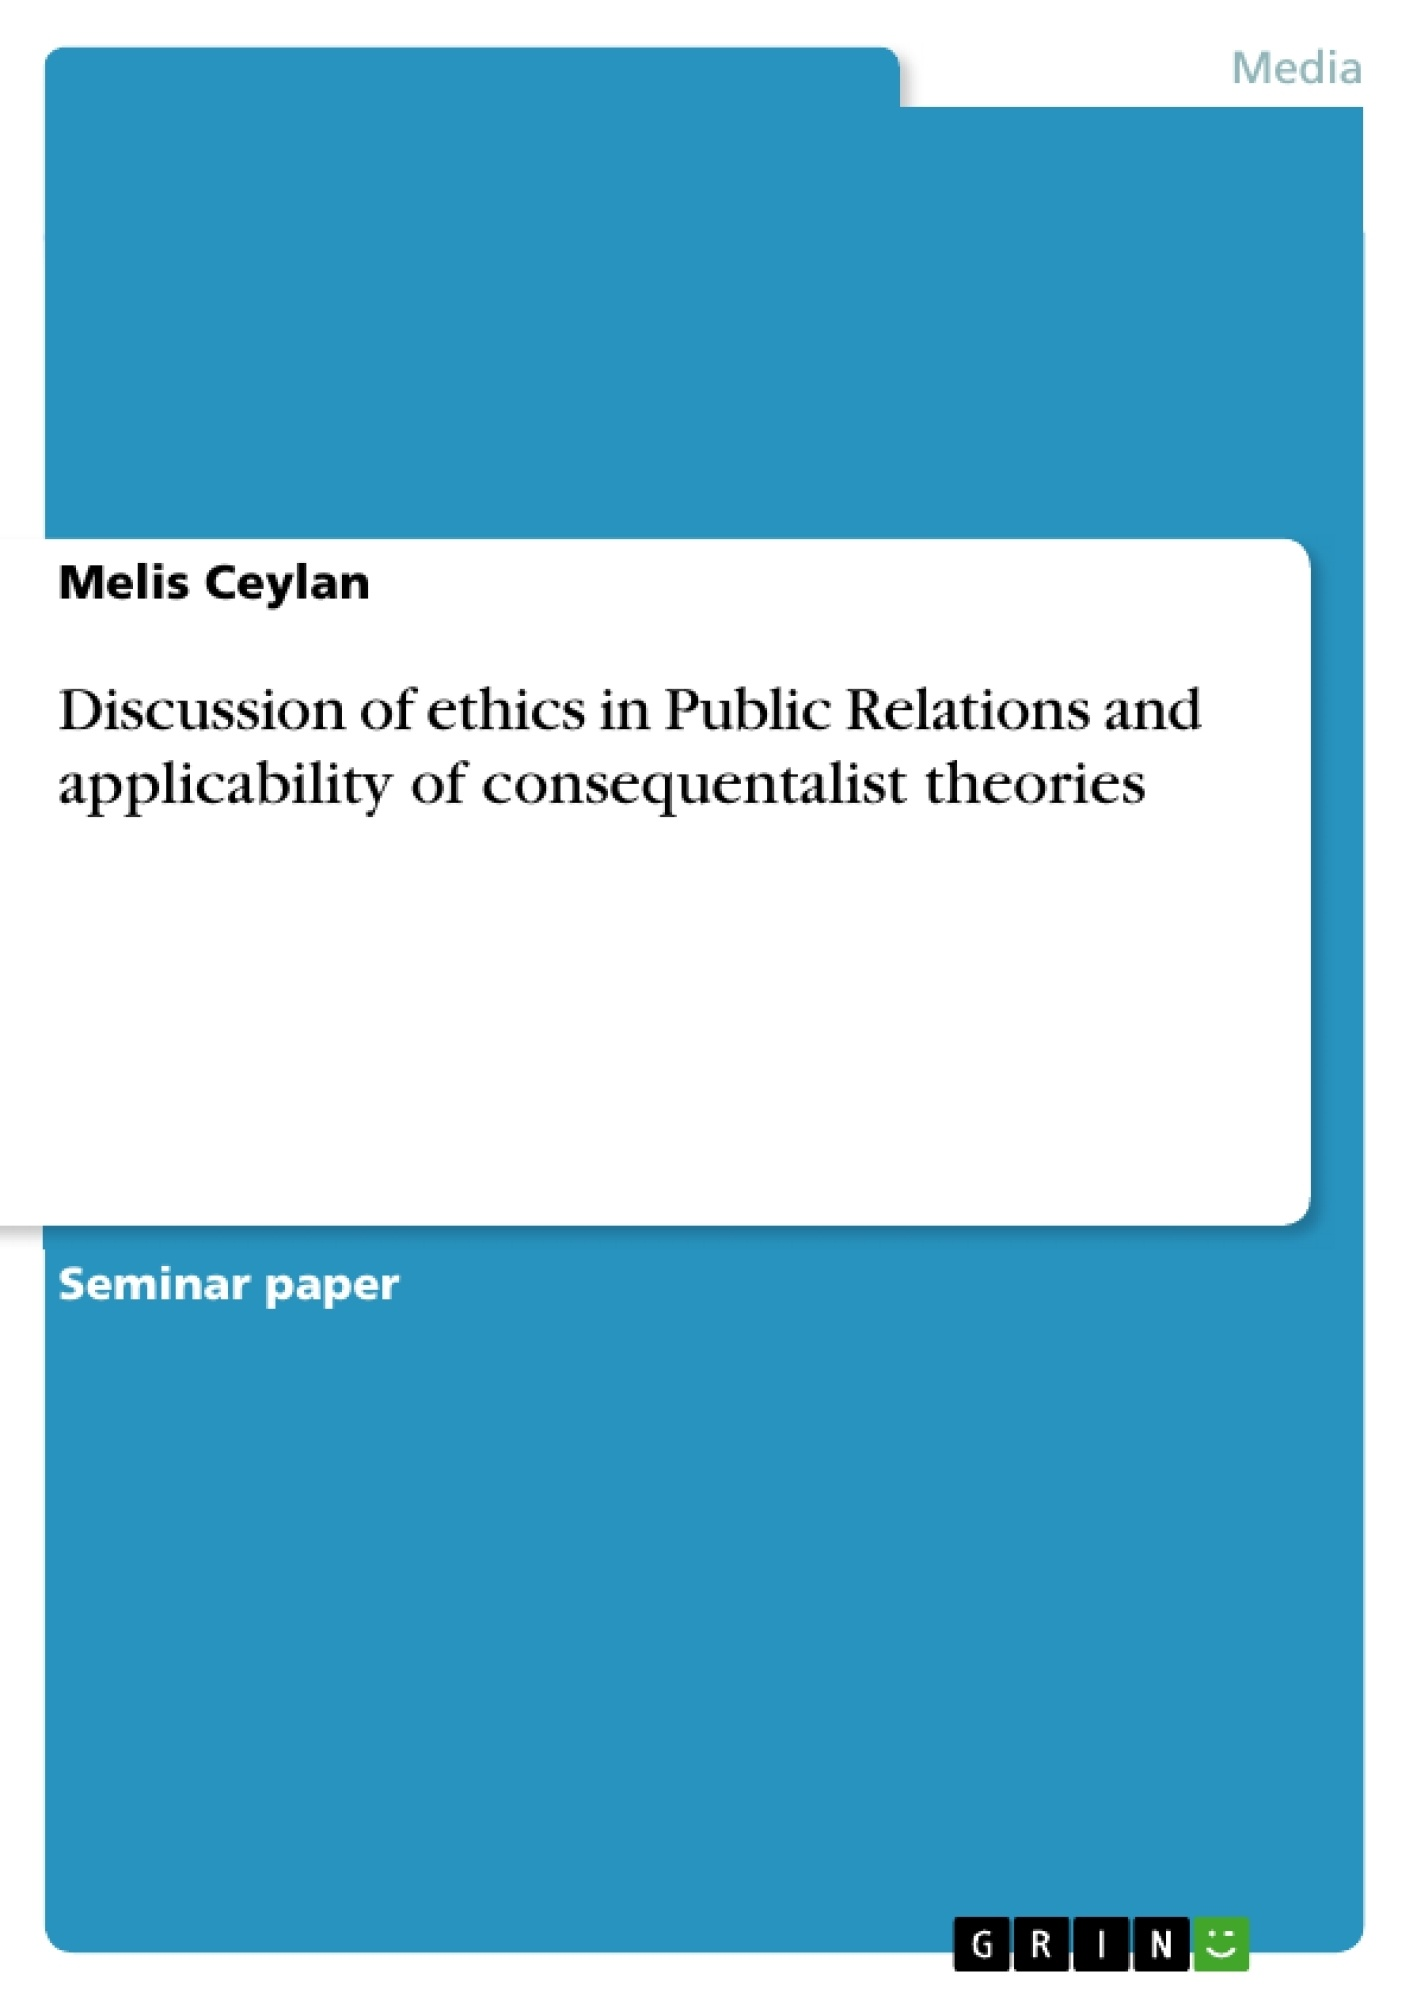 GRIN - Discussion of ethics in Public Relations and applicability of  consequentalist theories